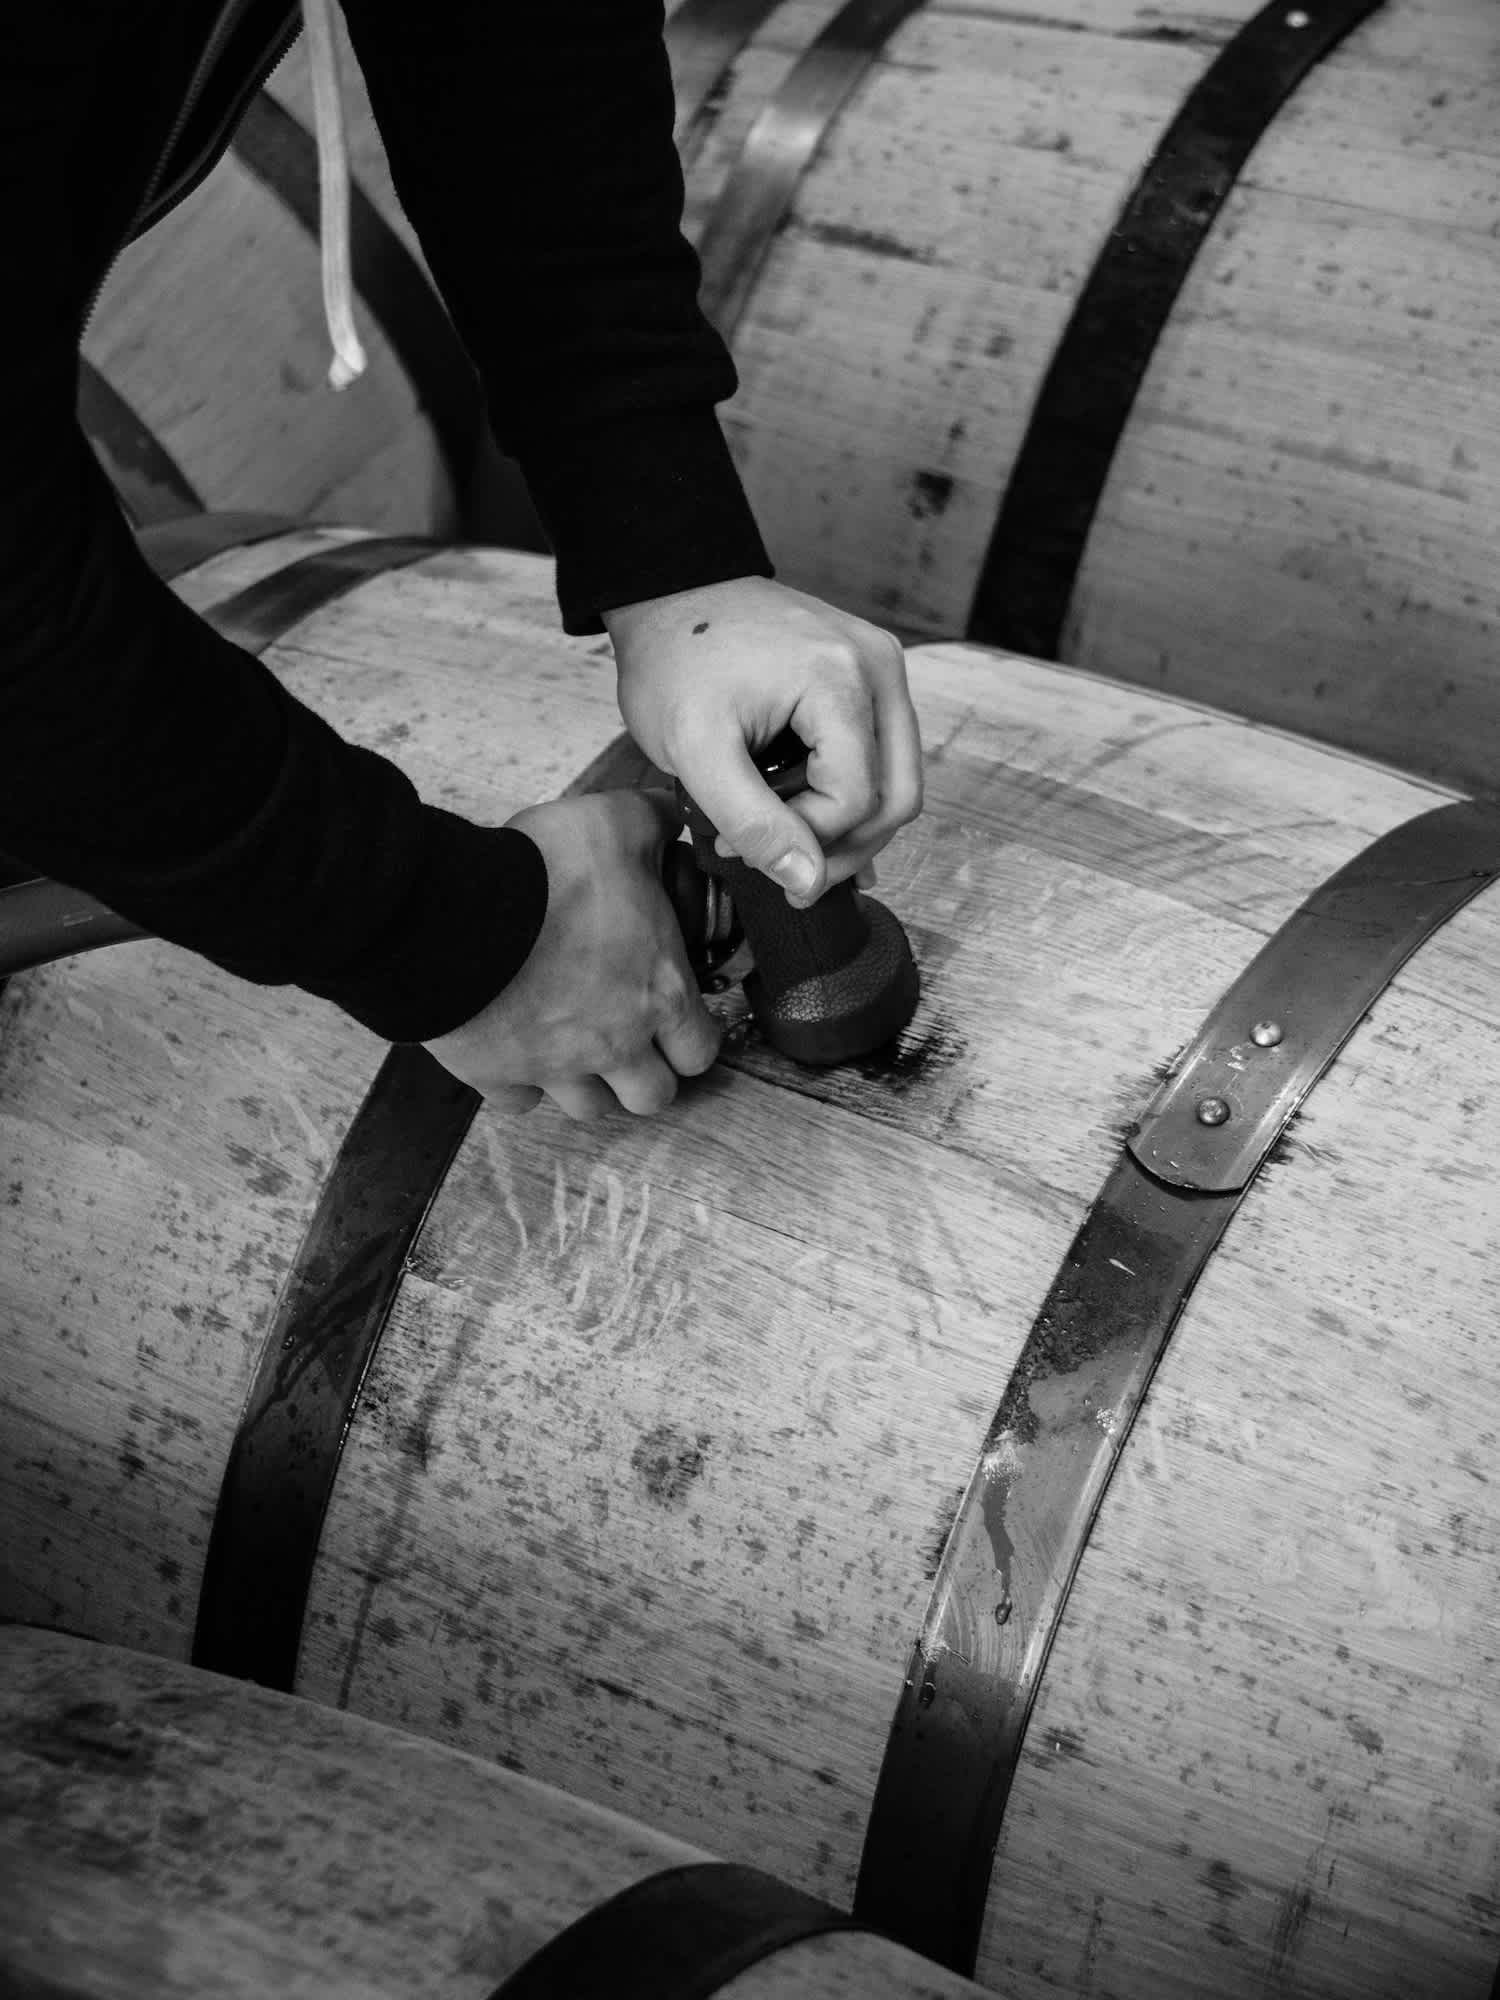 Black and white image of a person filling a barrel with alcohol